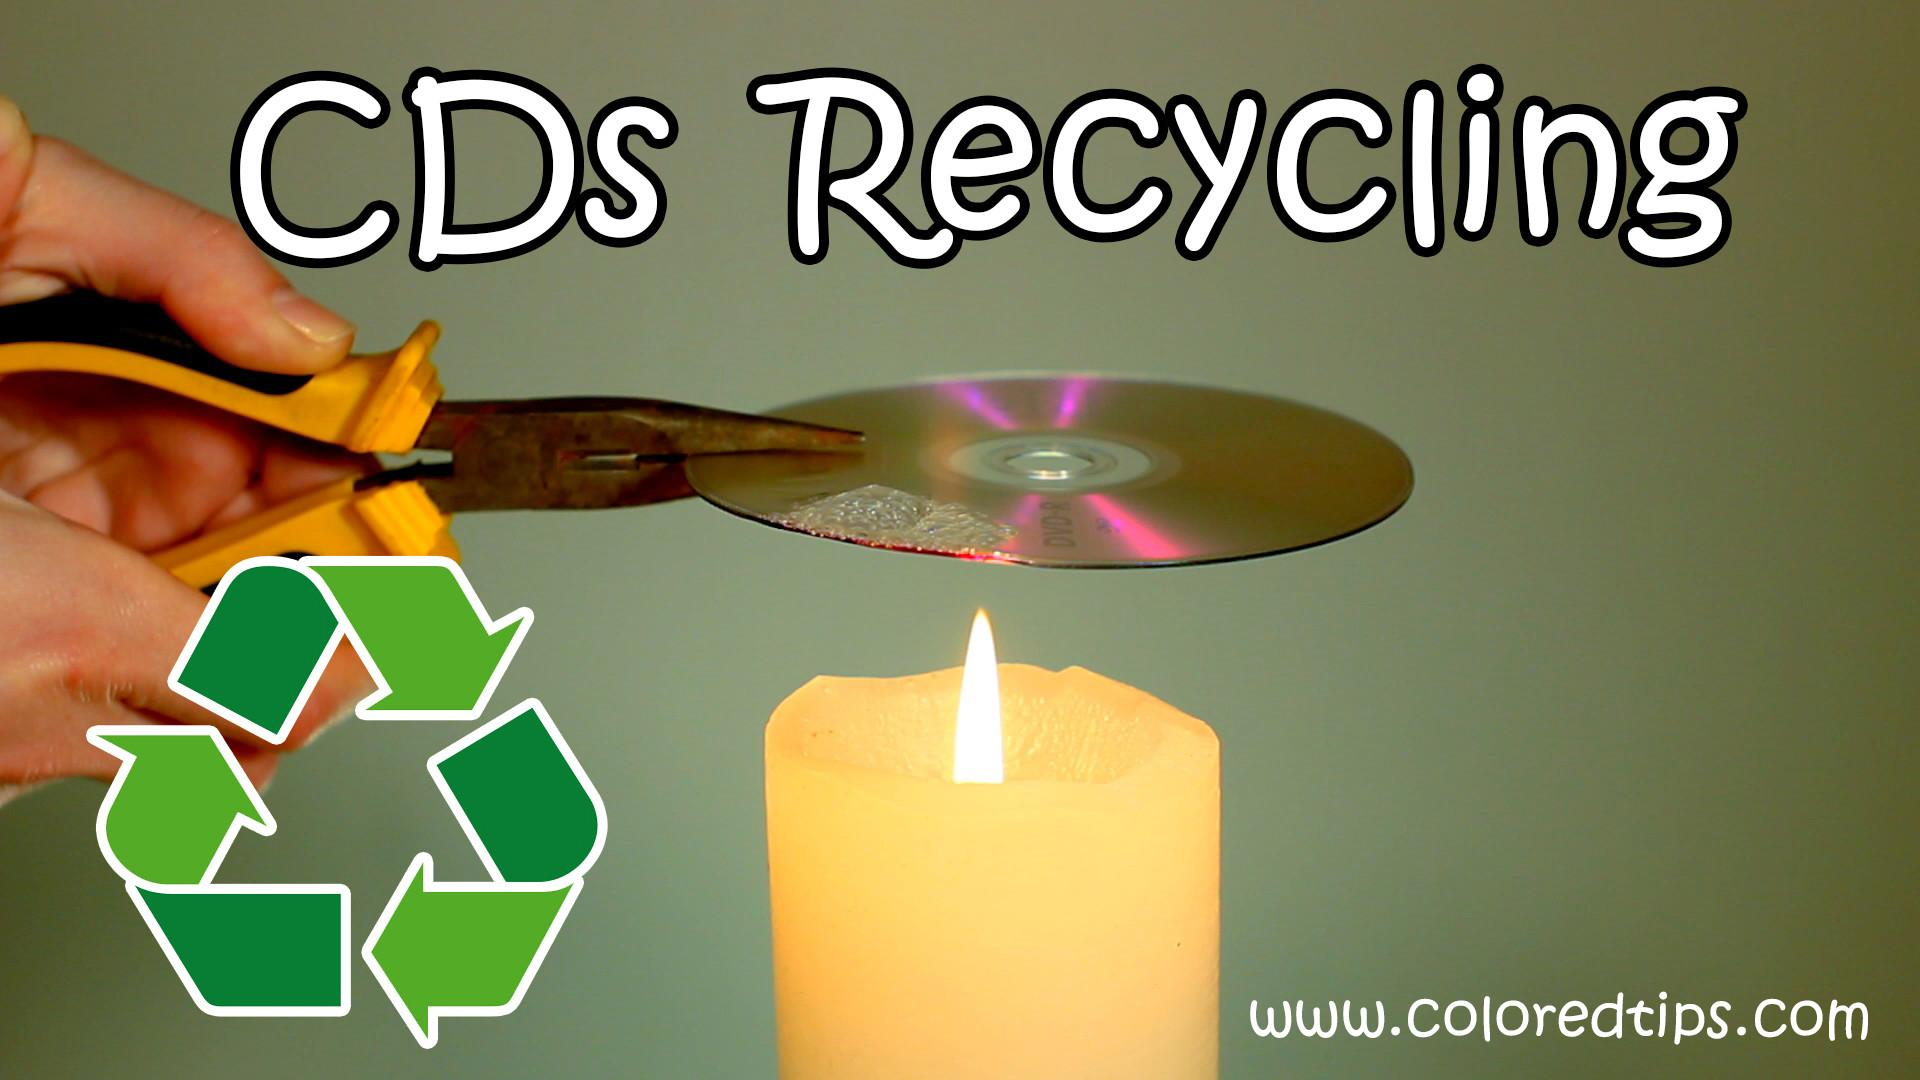 Cds Recycling Idea Way Recycle Options